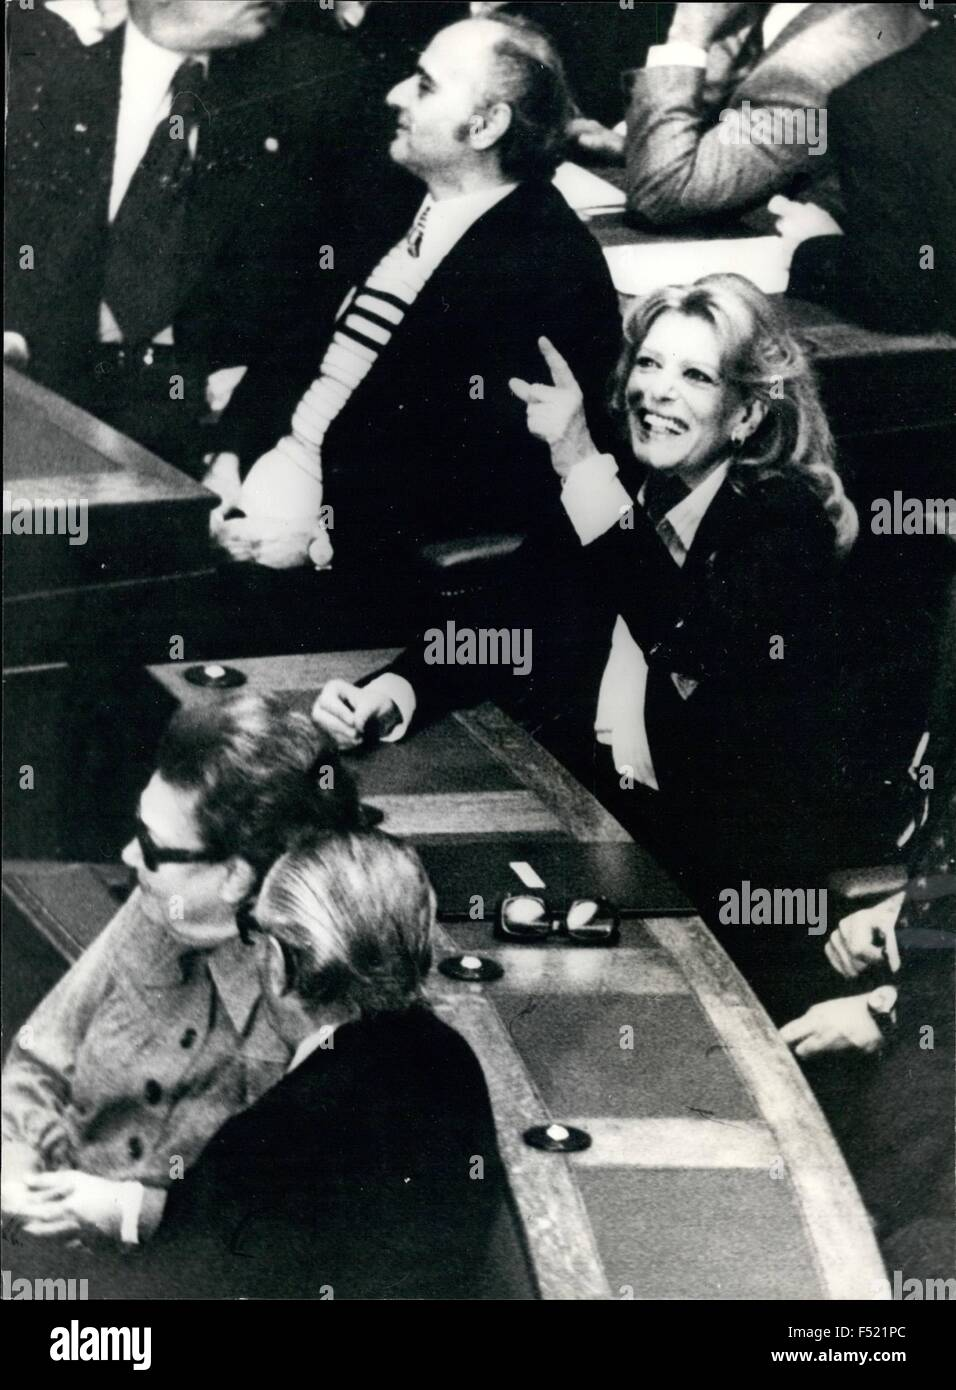 1972 - Melina takes her seat: Melina Mercouri (never on Sunday) who was recently elected as a member of Parliament - Stock Image